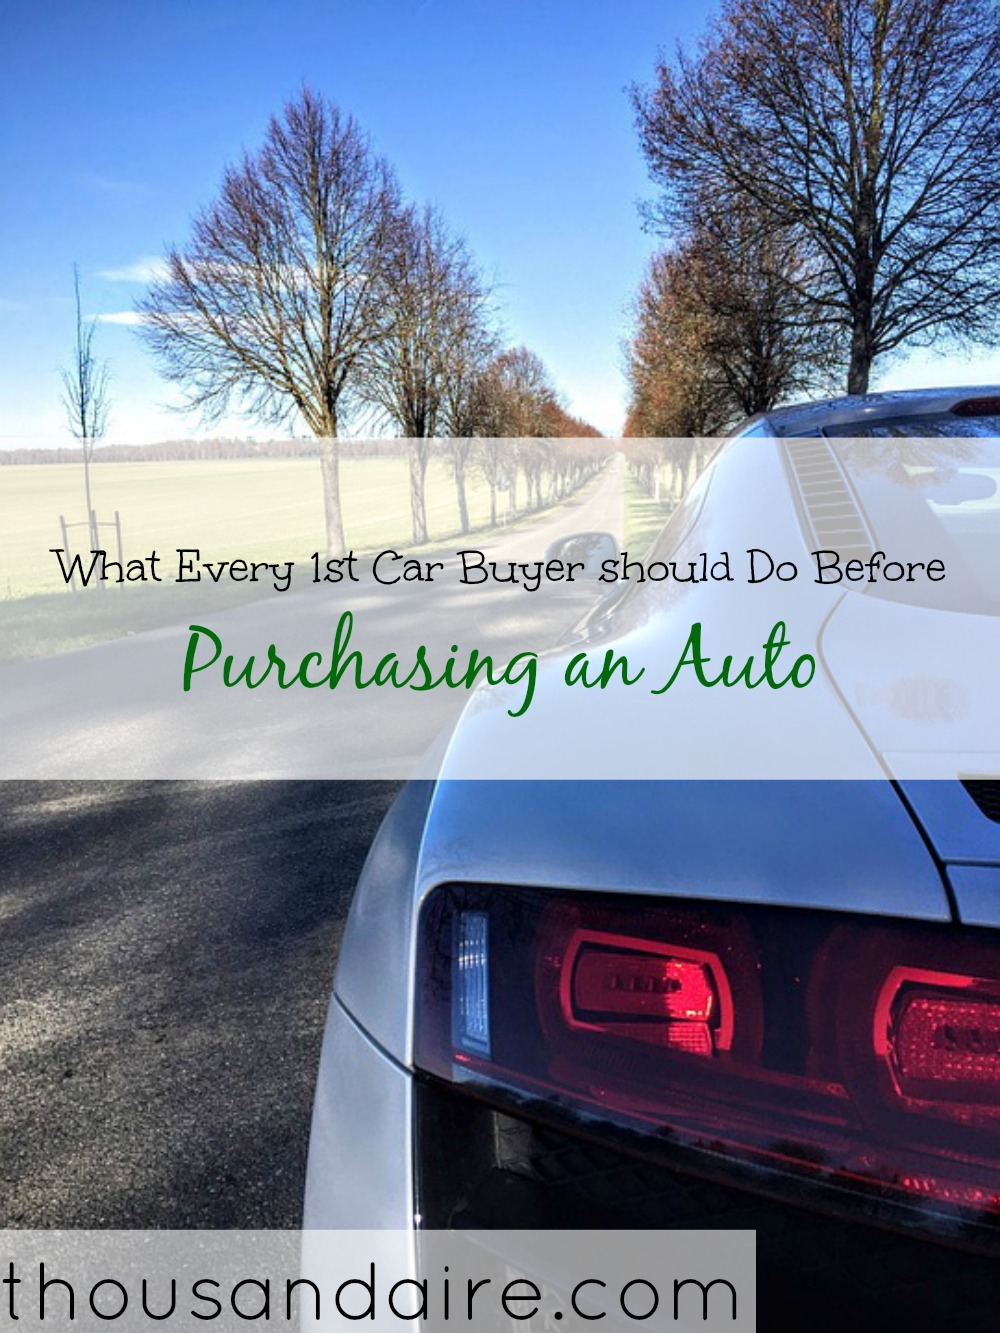 buying a car, purchasing a car tips, purchasing a car